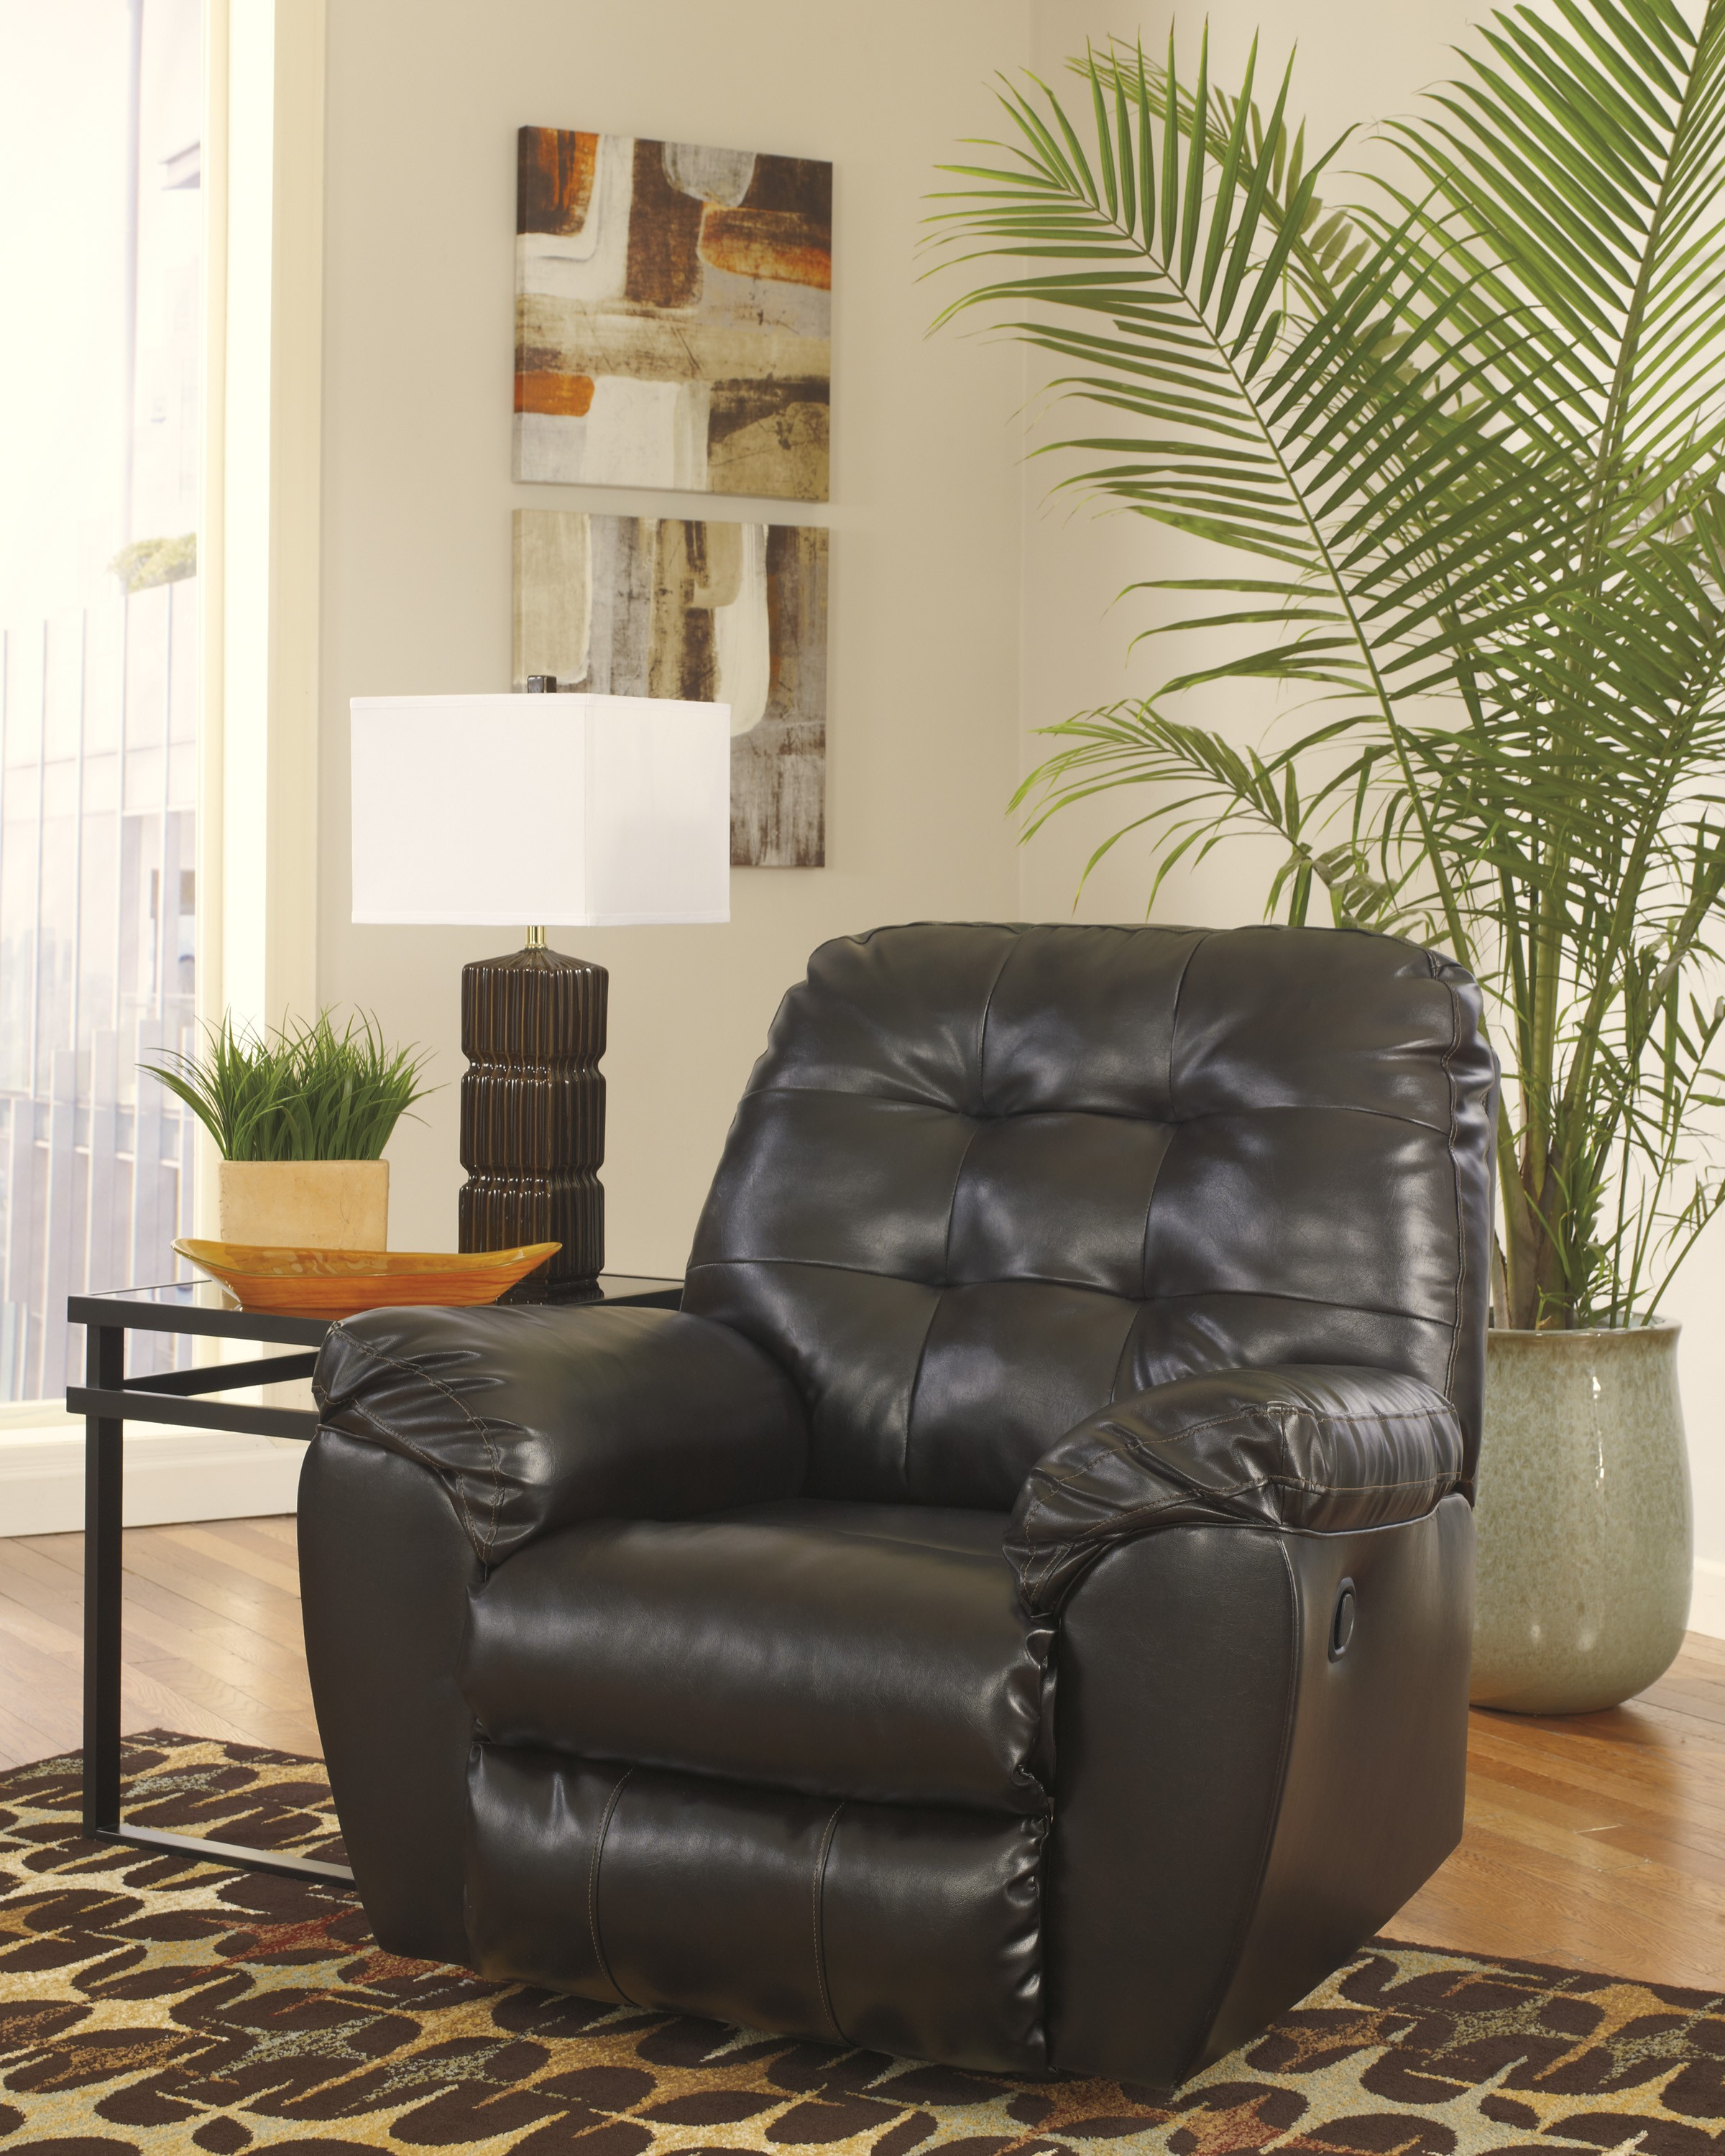 Hercules Oyster Swivel Glider Recliners Intended For 2019 Leon Furniture (Gallery 17 of 20)